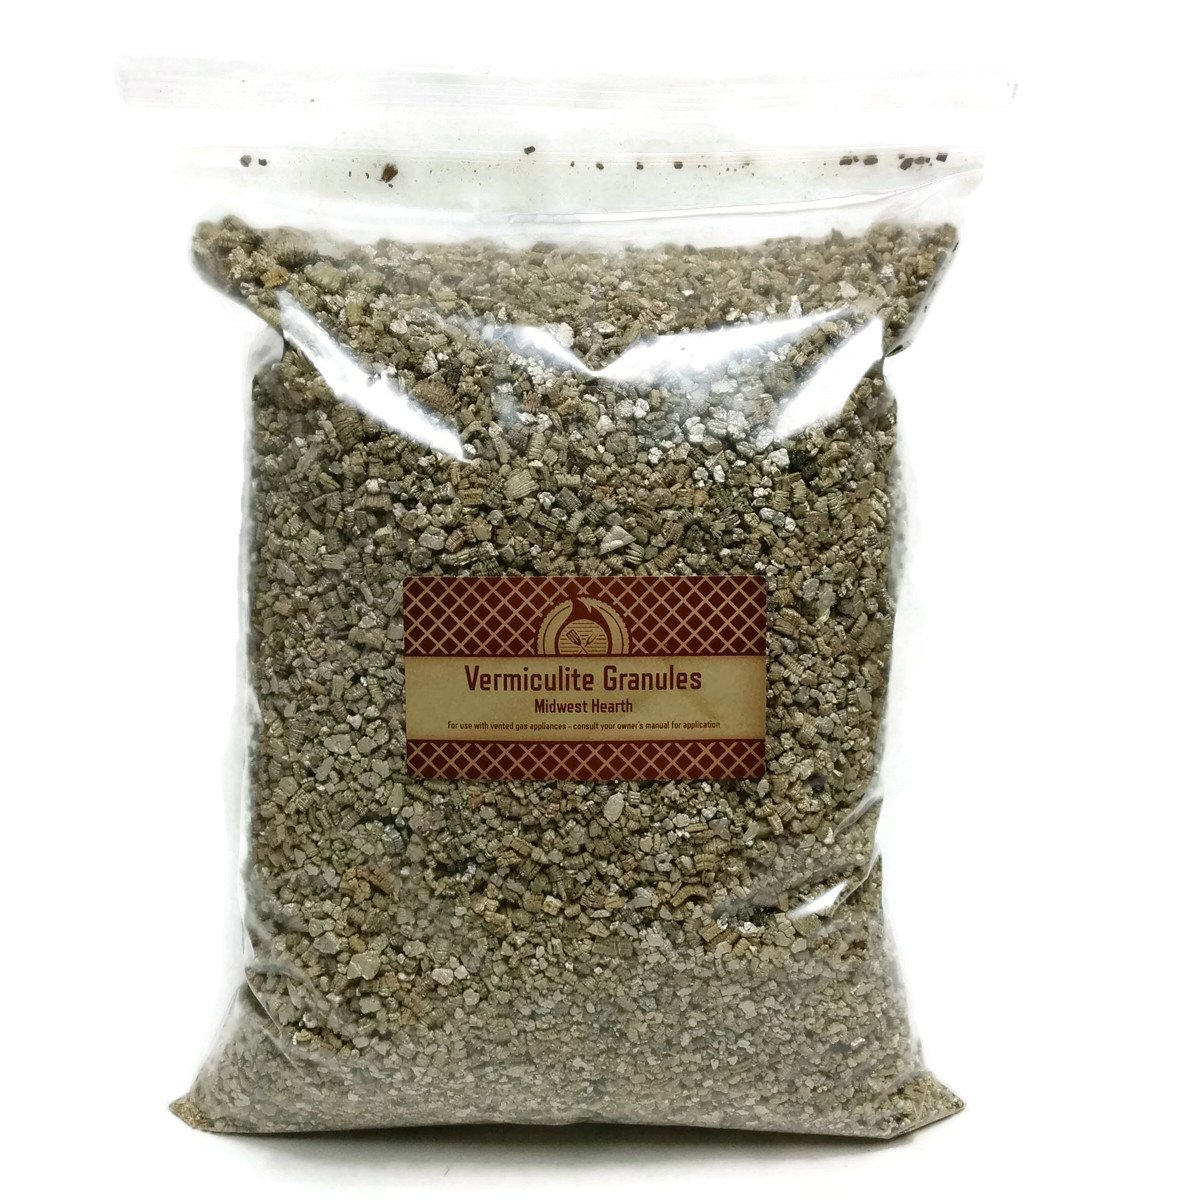 Midwest Hearth Vermiculite Granules for Gas Logs - 12 oz Bag by Midwest Hearth